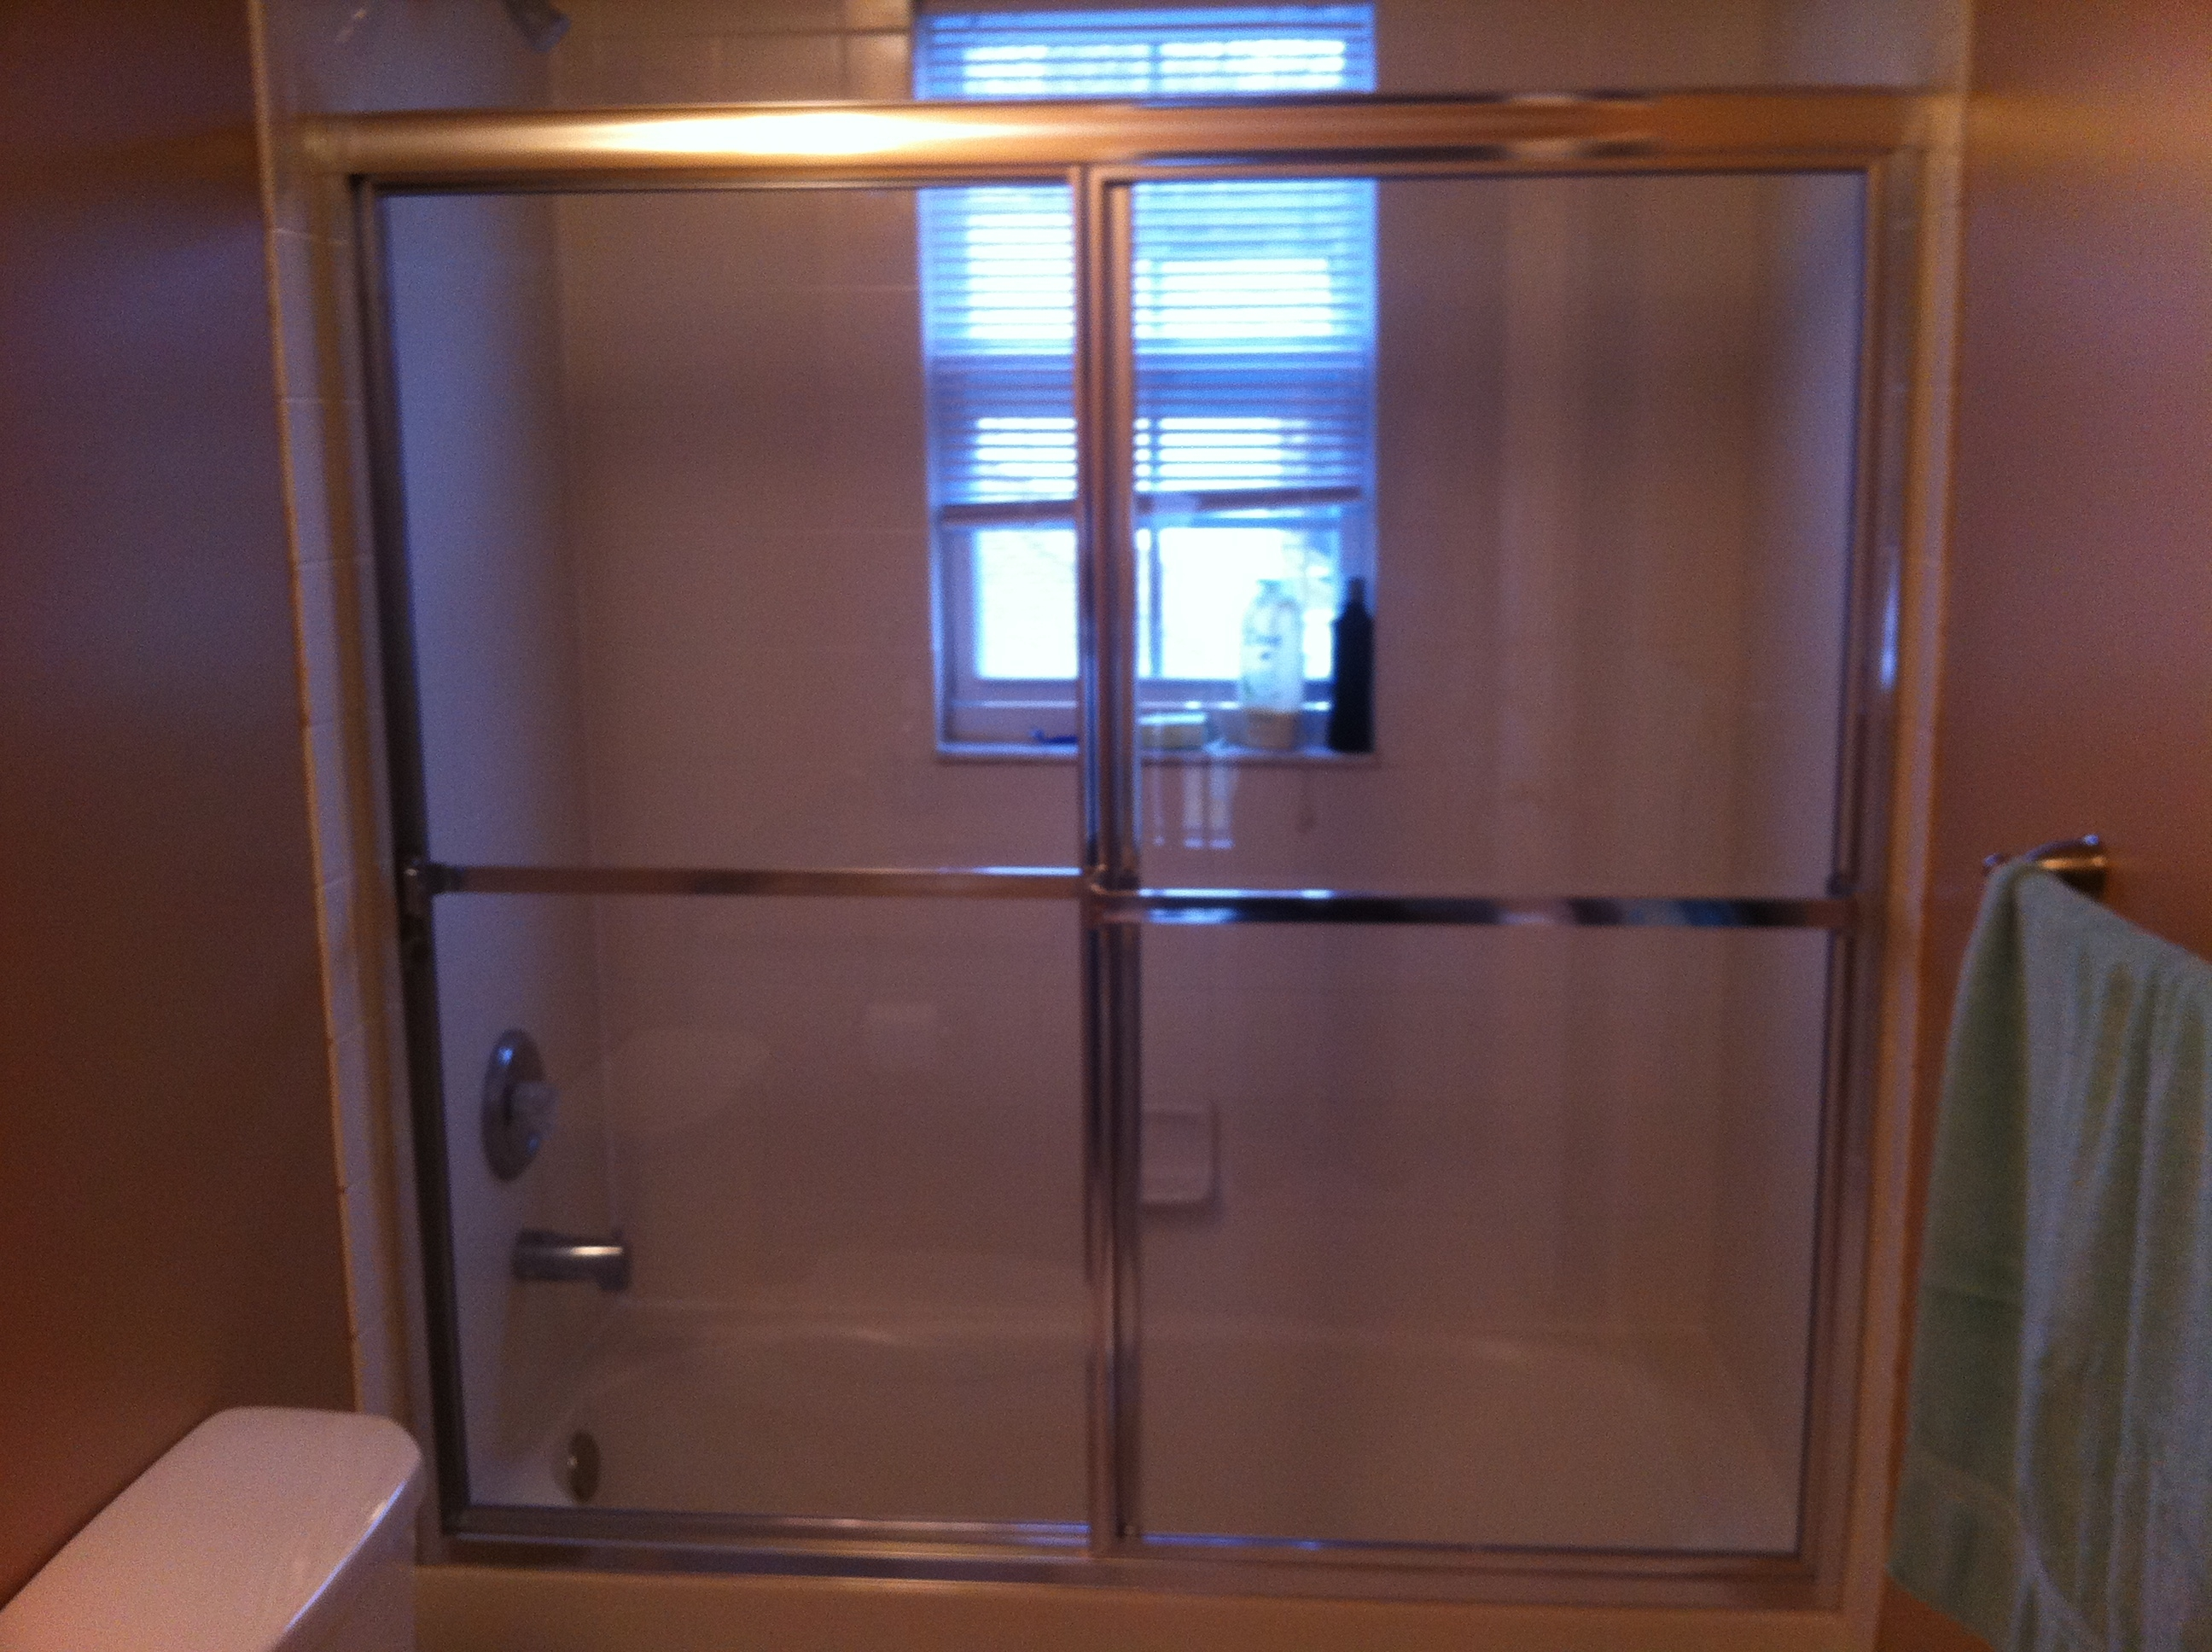 Century Shower Doors Lucettesliding shower doors amg shower doors nj